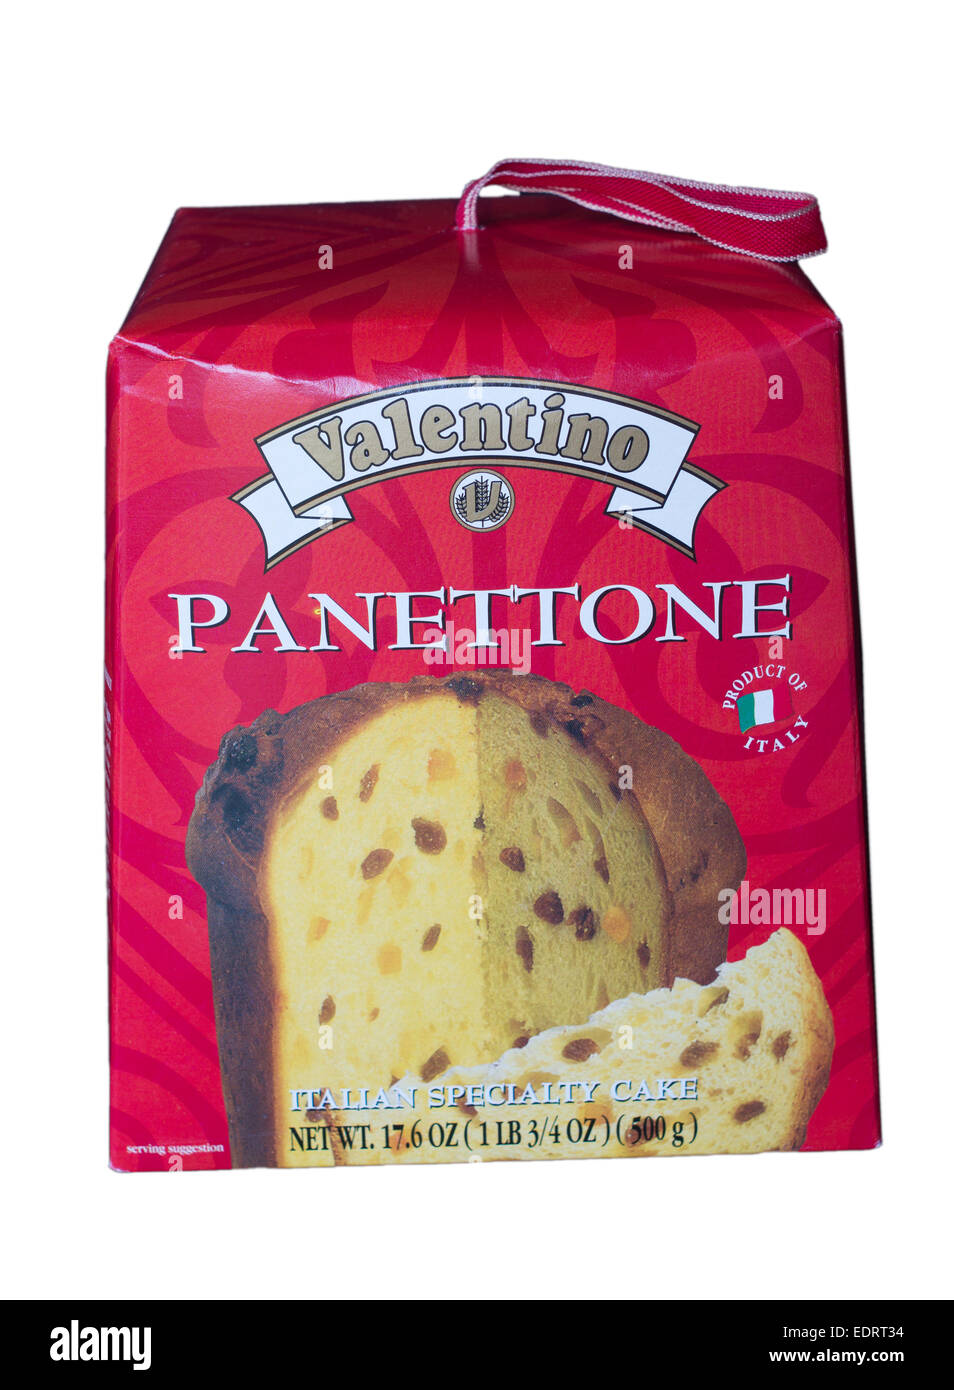 a8e76a2516 Presentation box of Italian Panettone by Valentino isolated on a white  background. - Stock Image